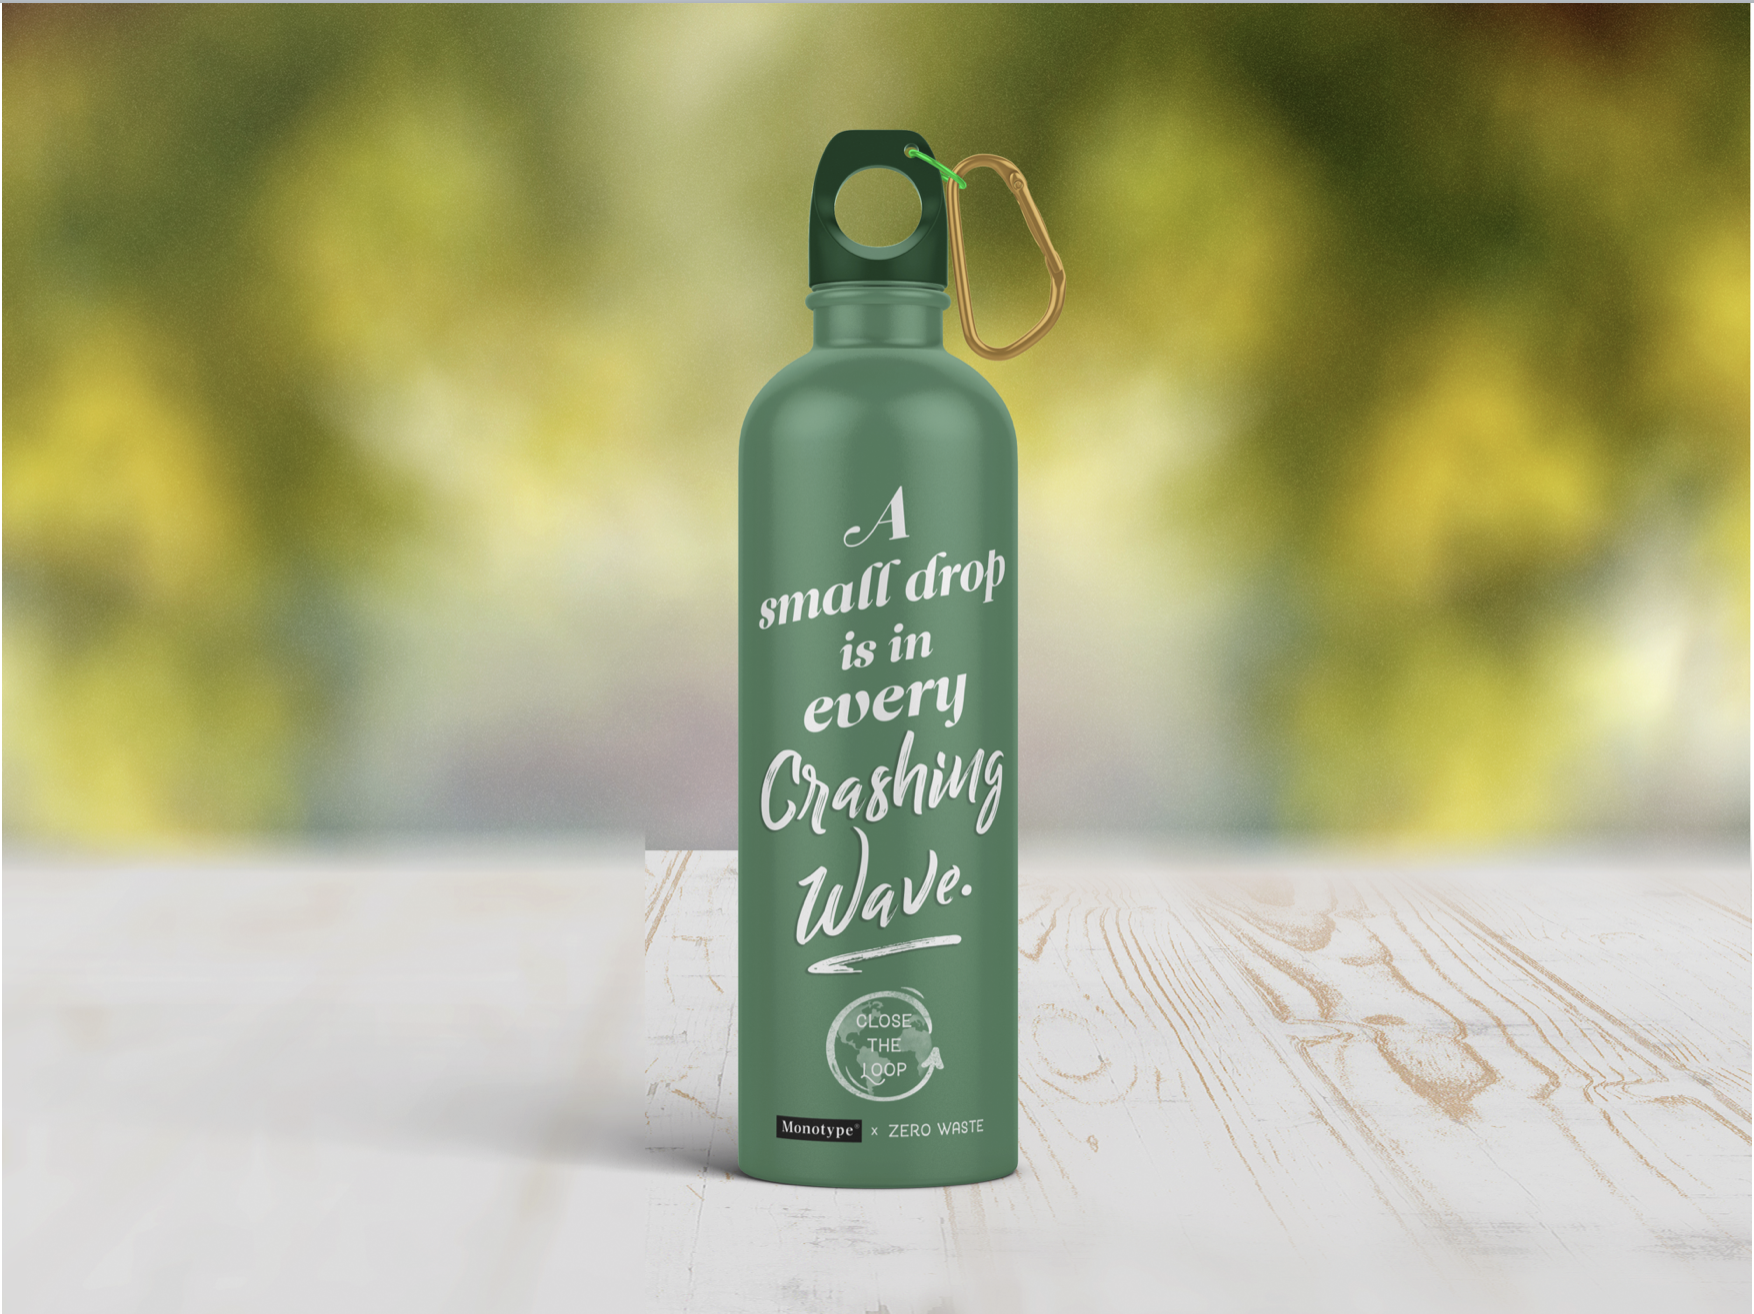 Coachella's setting in southern California's dessert means hydration is important, but many participants rely on plastic water bottles. We propose giving each attendee a refillable bottle to help minimize the festival's carbon impact.